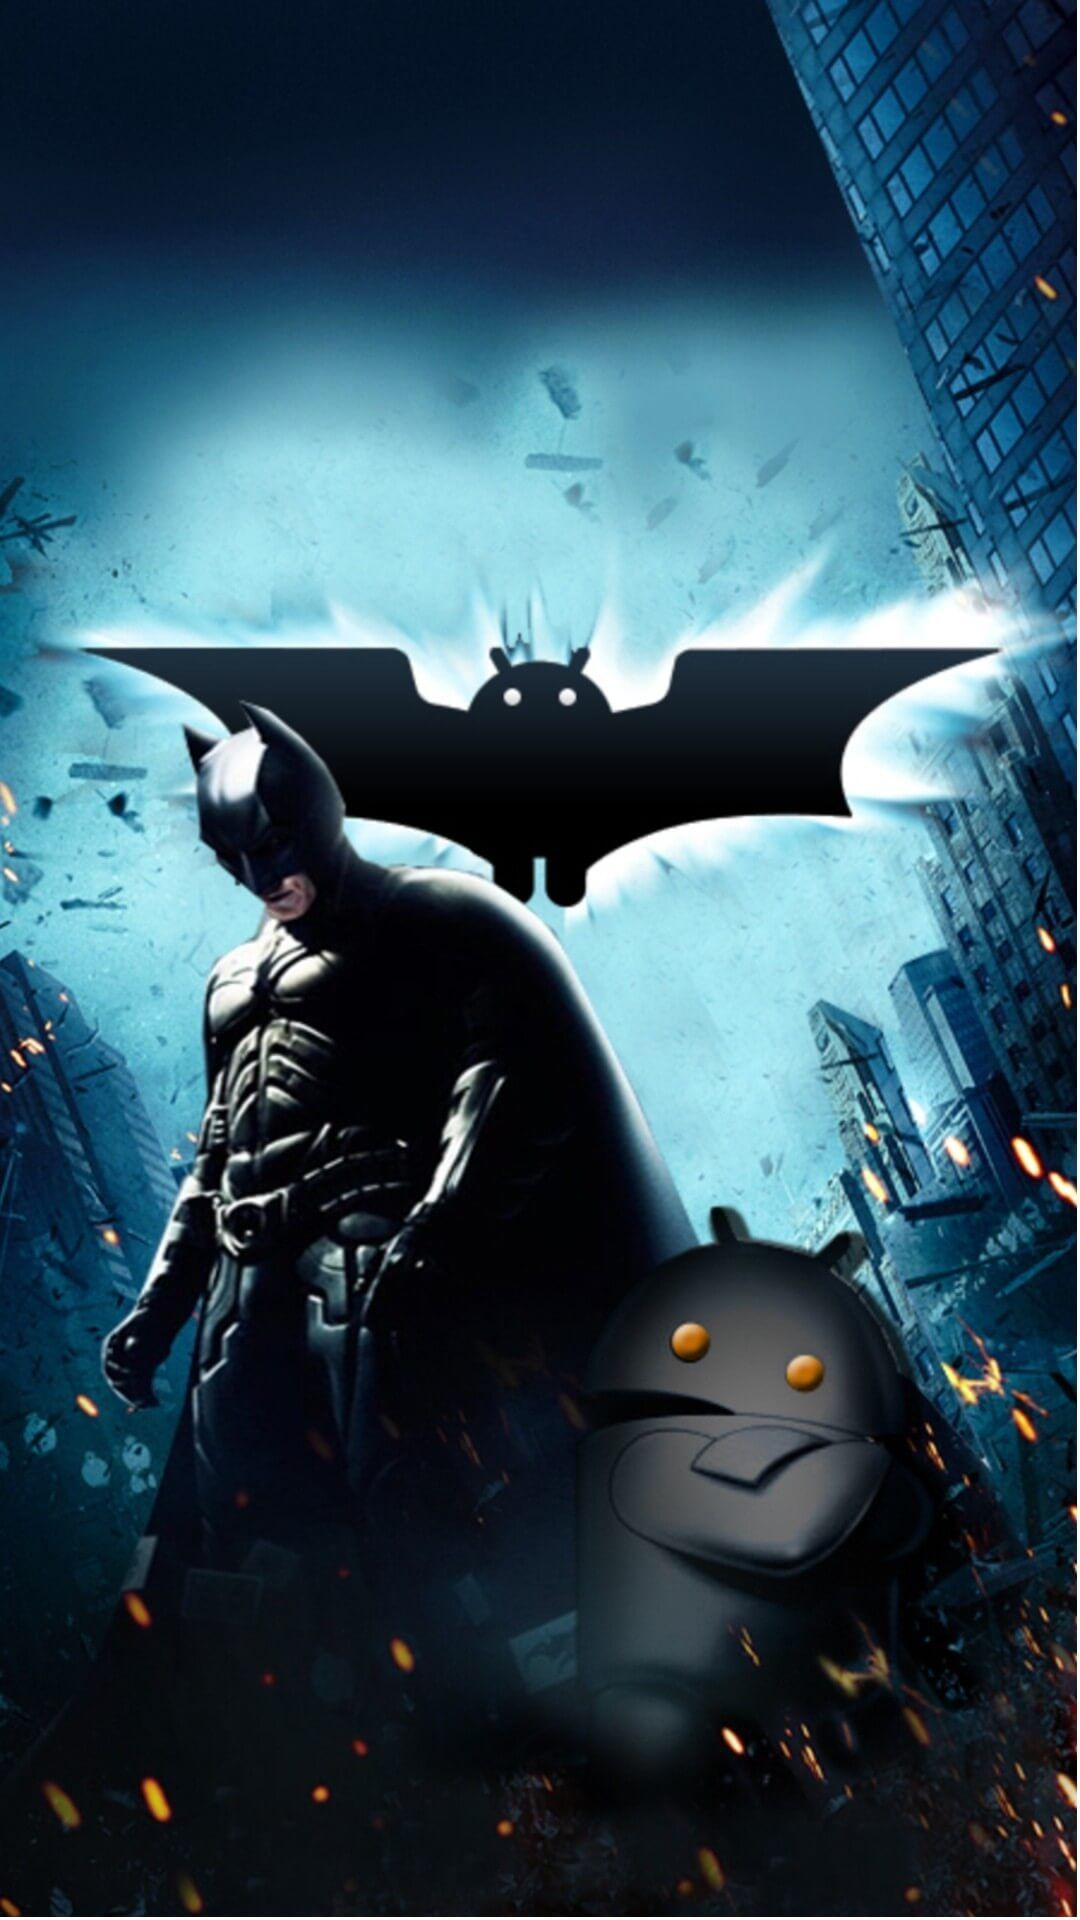 batman iphone wallpaper batman wallpaper for iphone pinterest